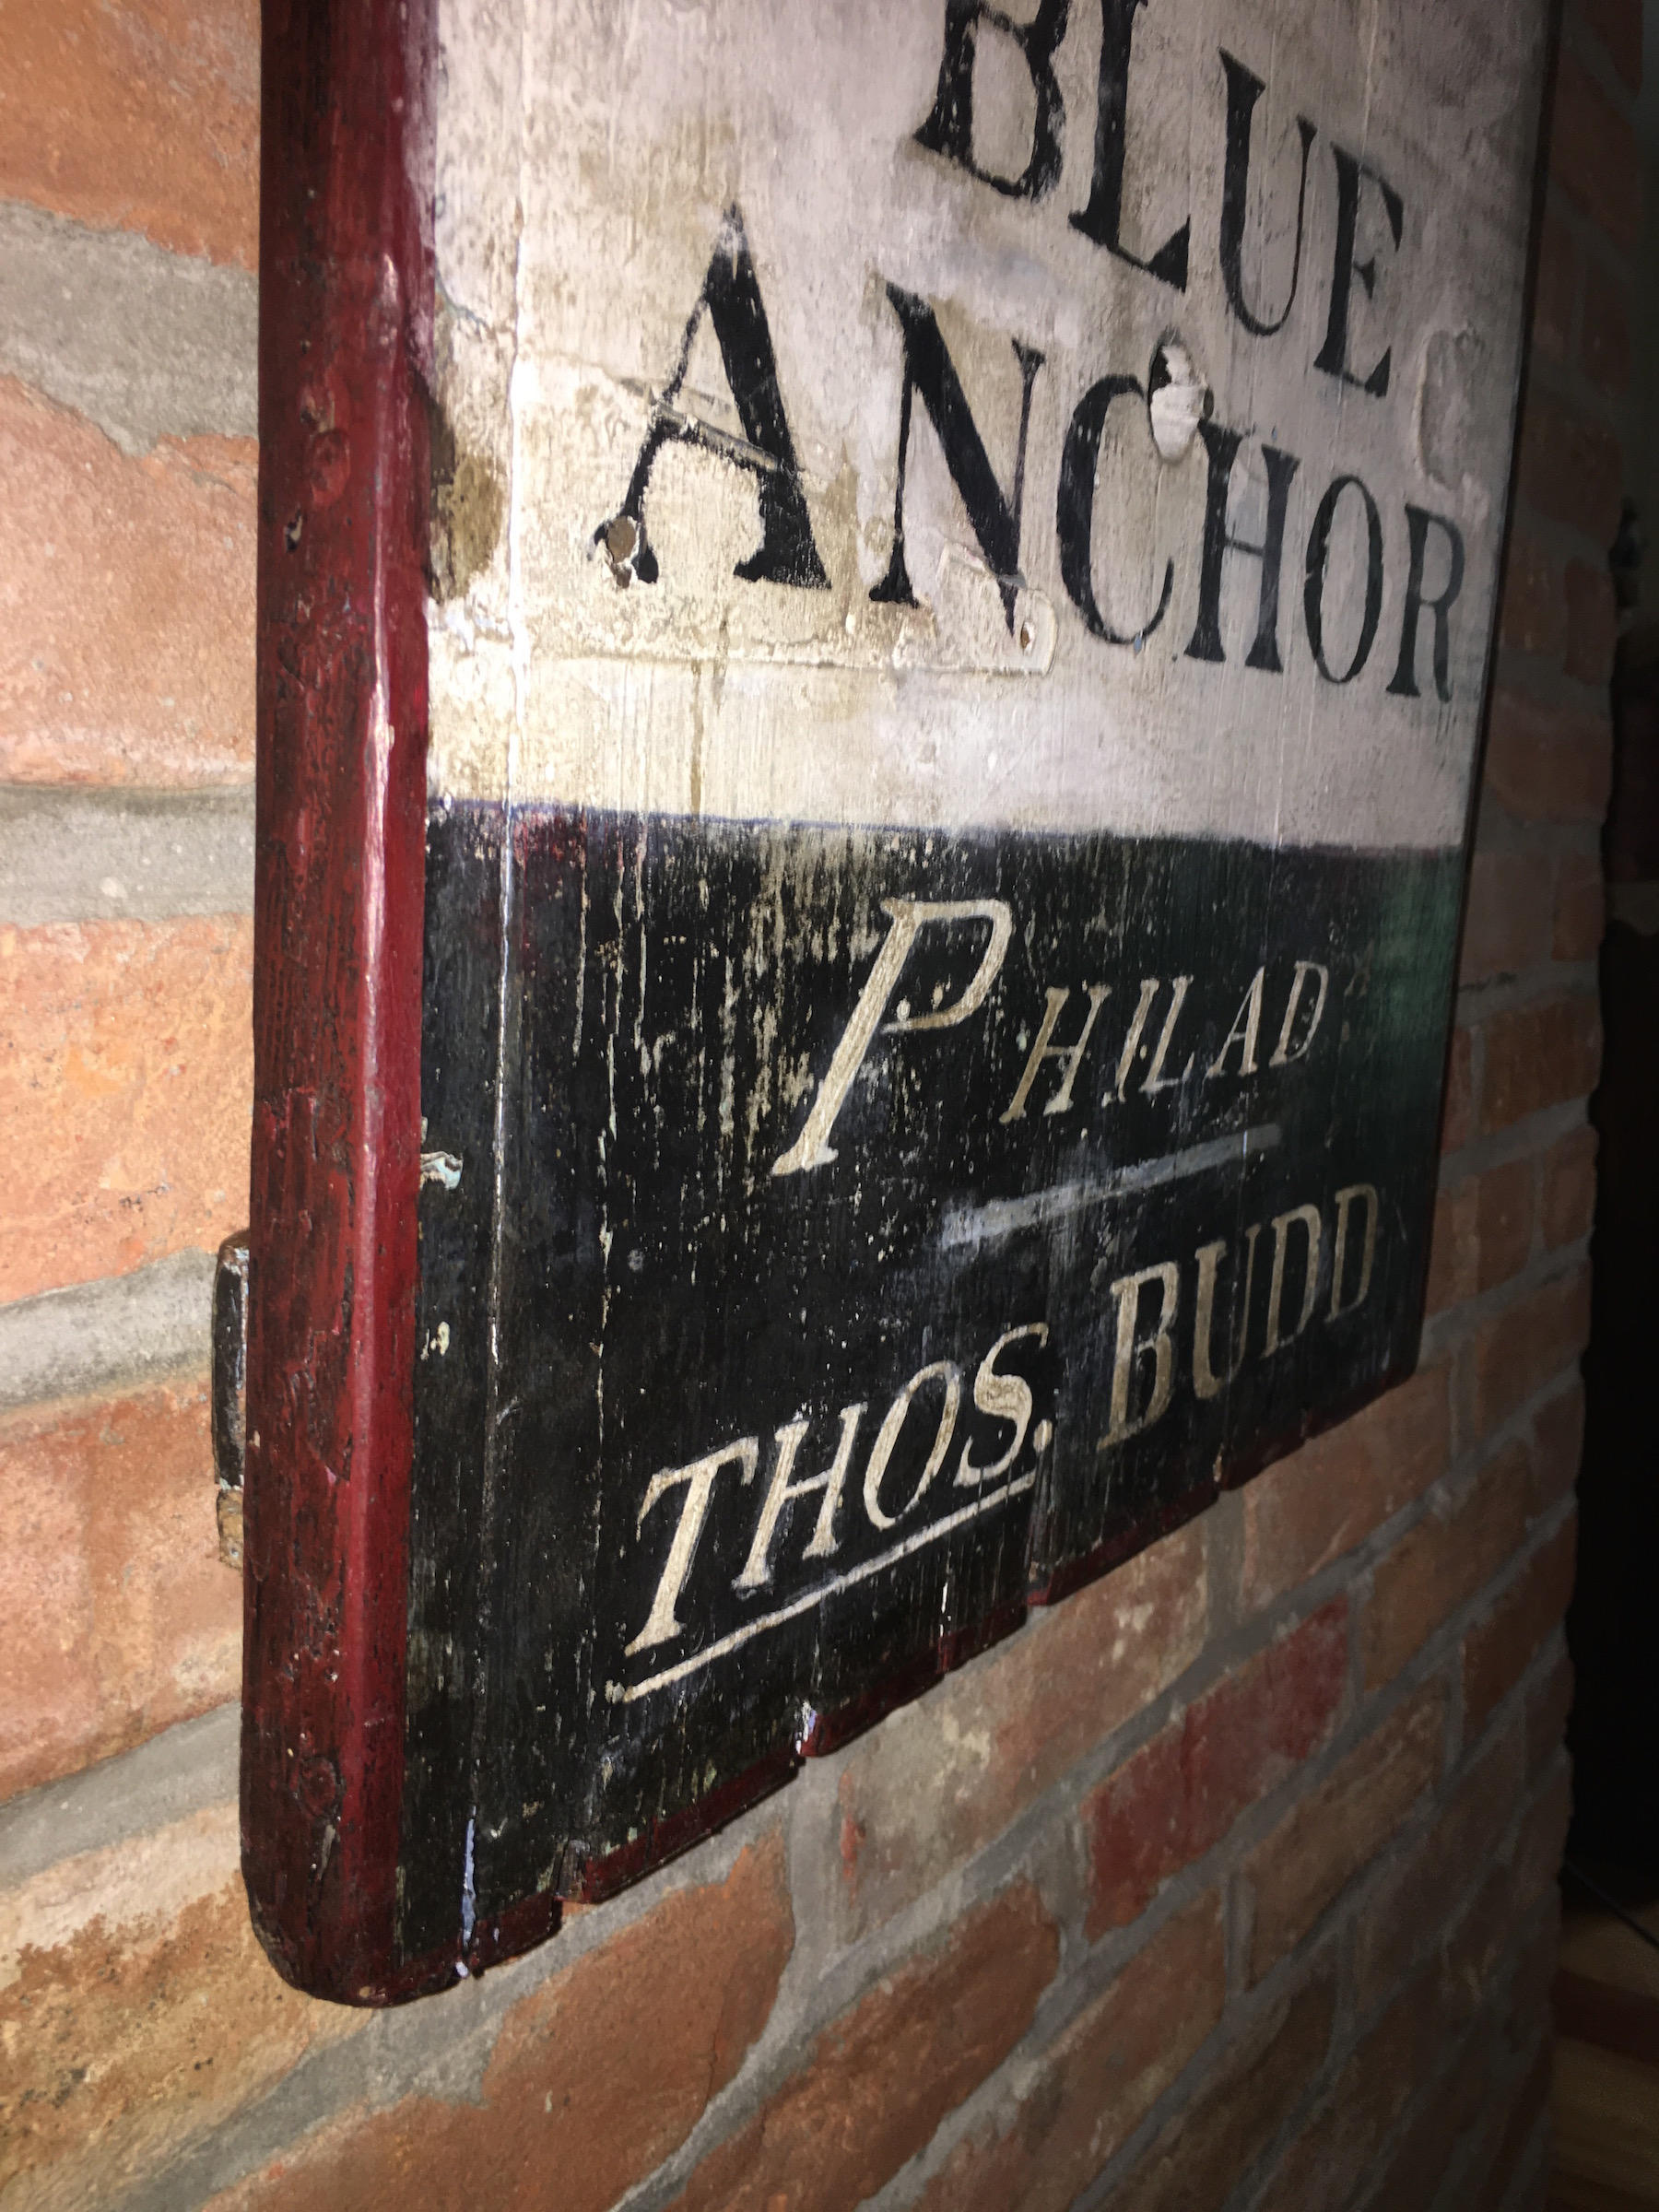 colonial american sign company_blue anchor tavern_thos budd2.jpg